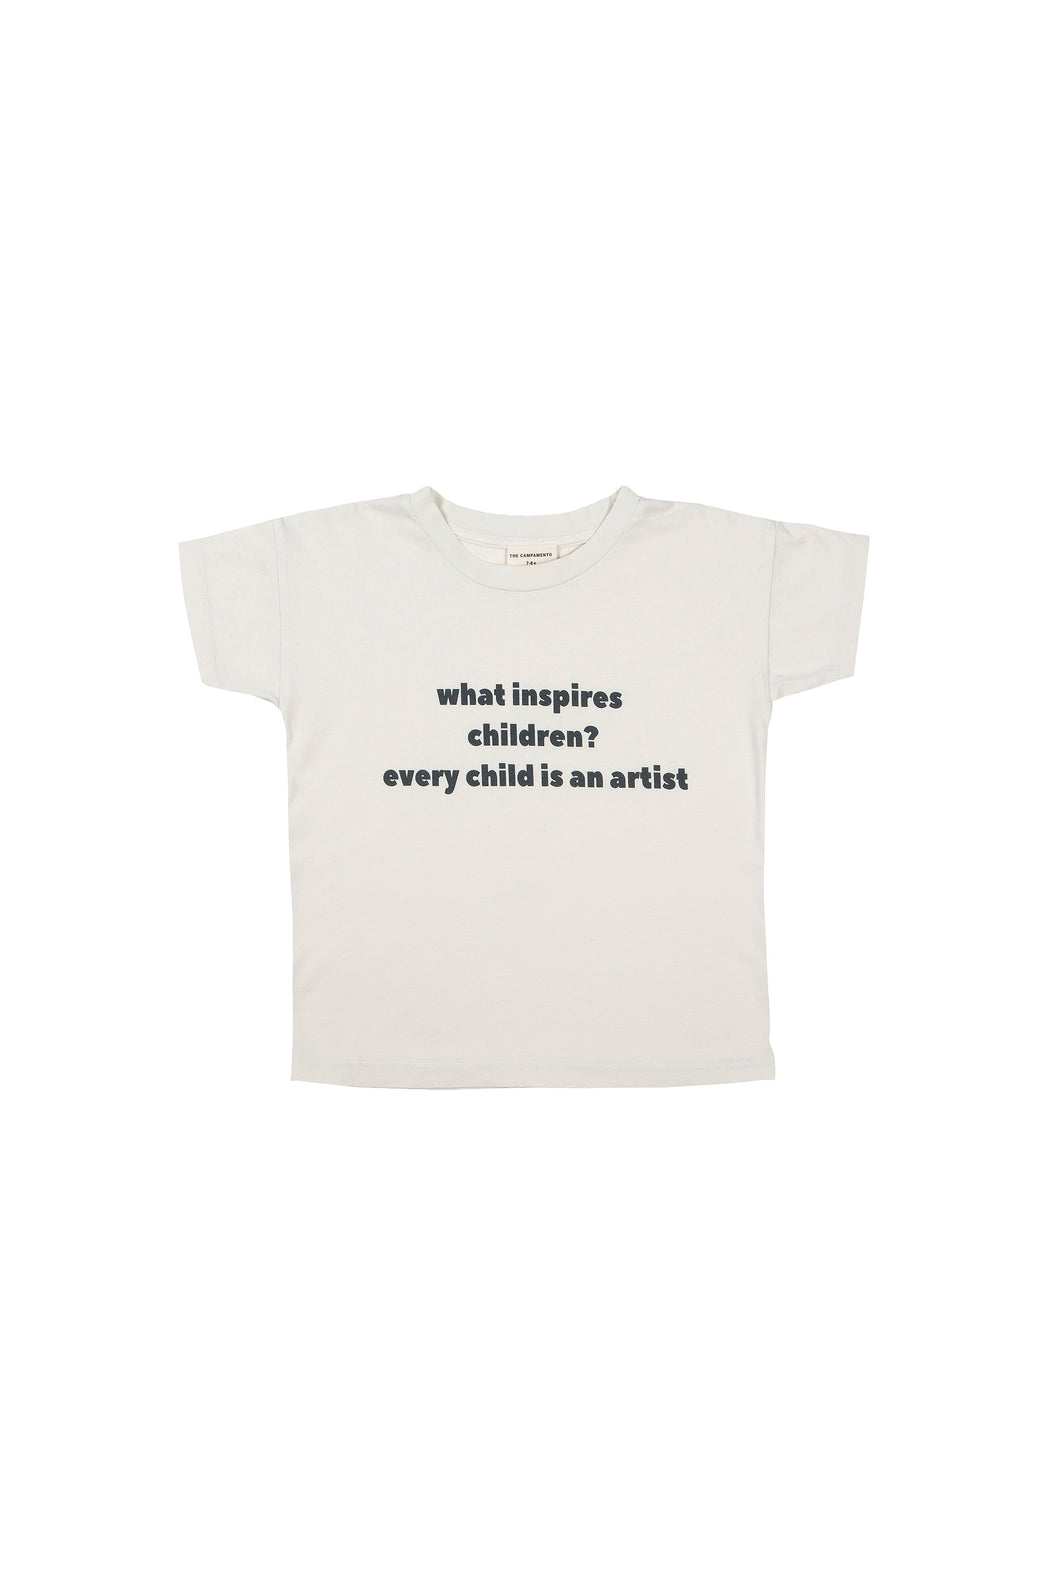 Every Child is an Artist T-Shirt